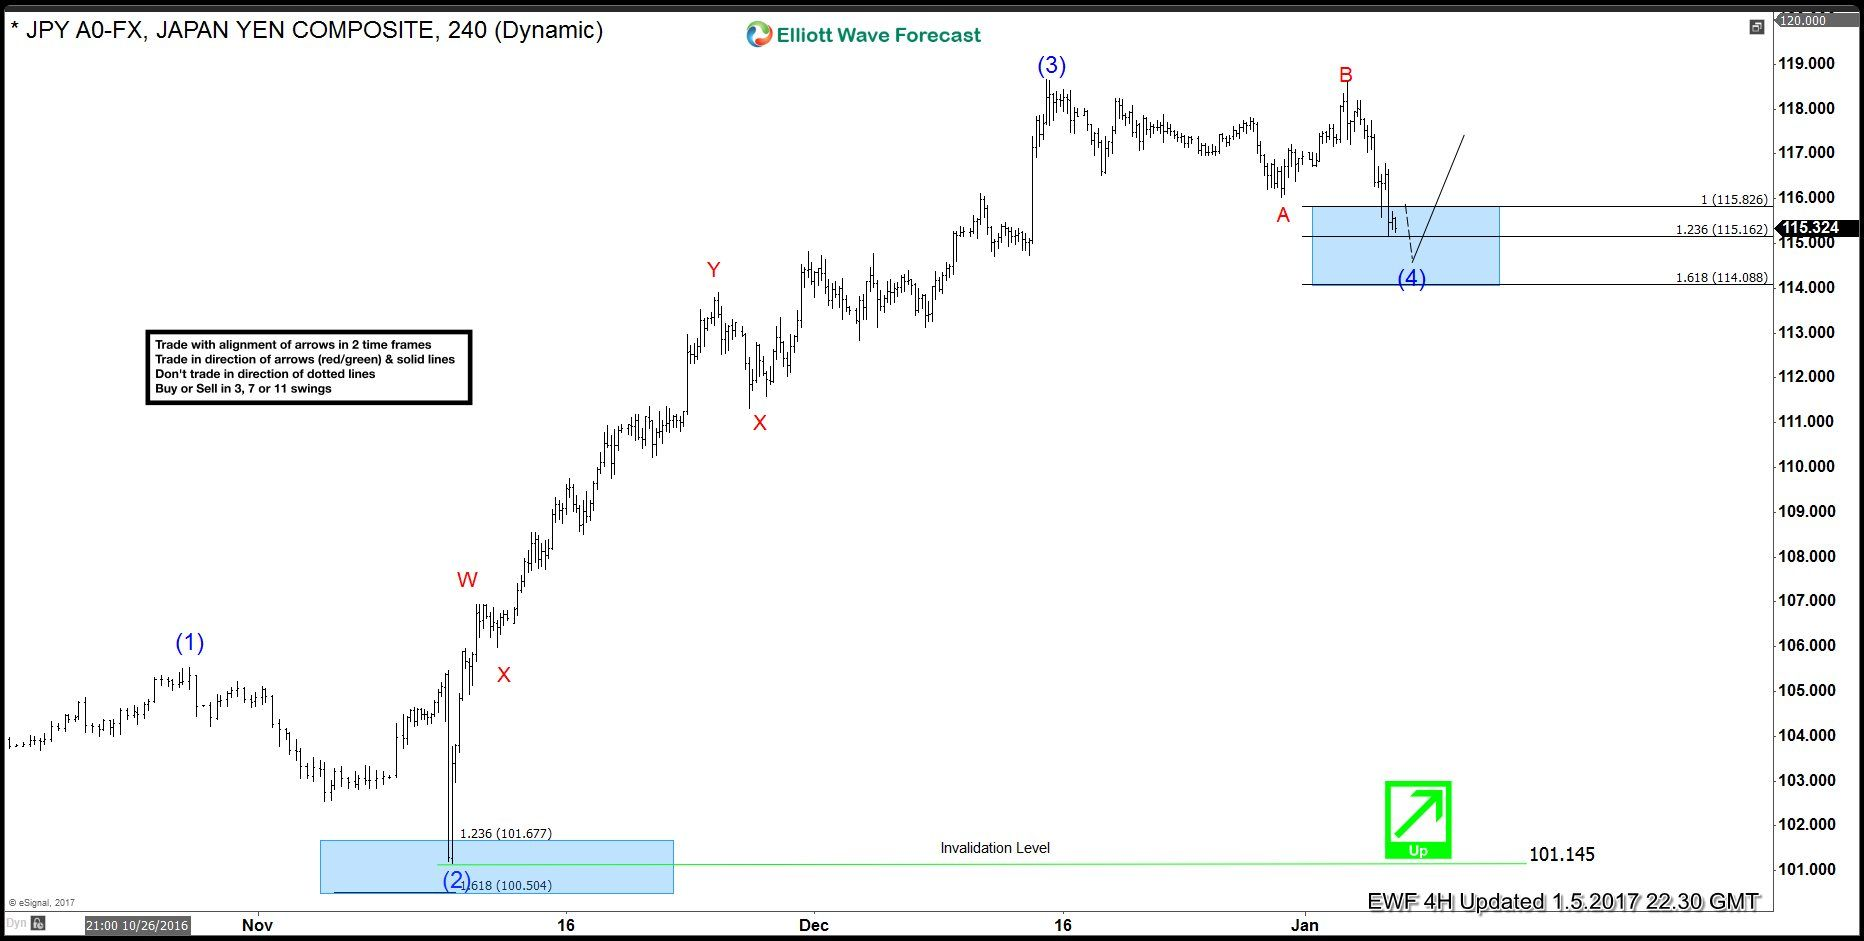 USDJPY buying dips after a FLAT correction #elliottwave